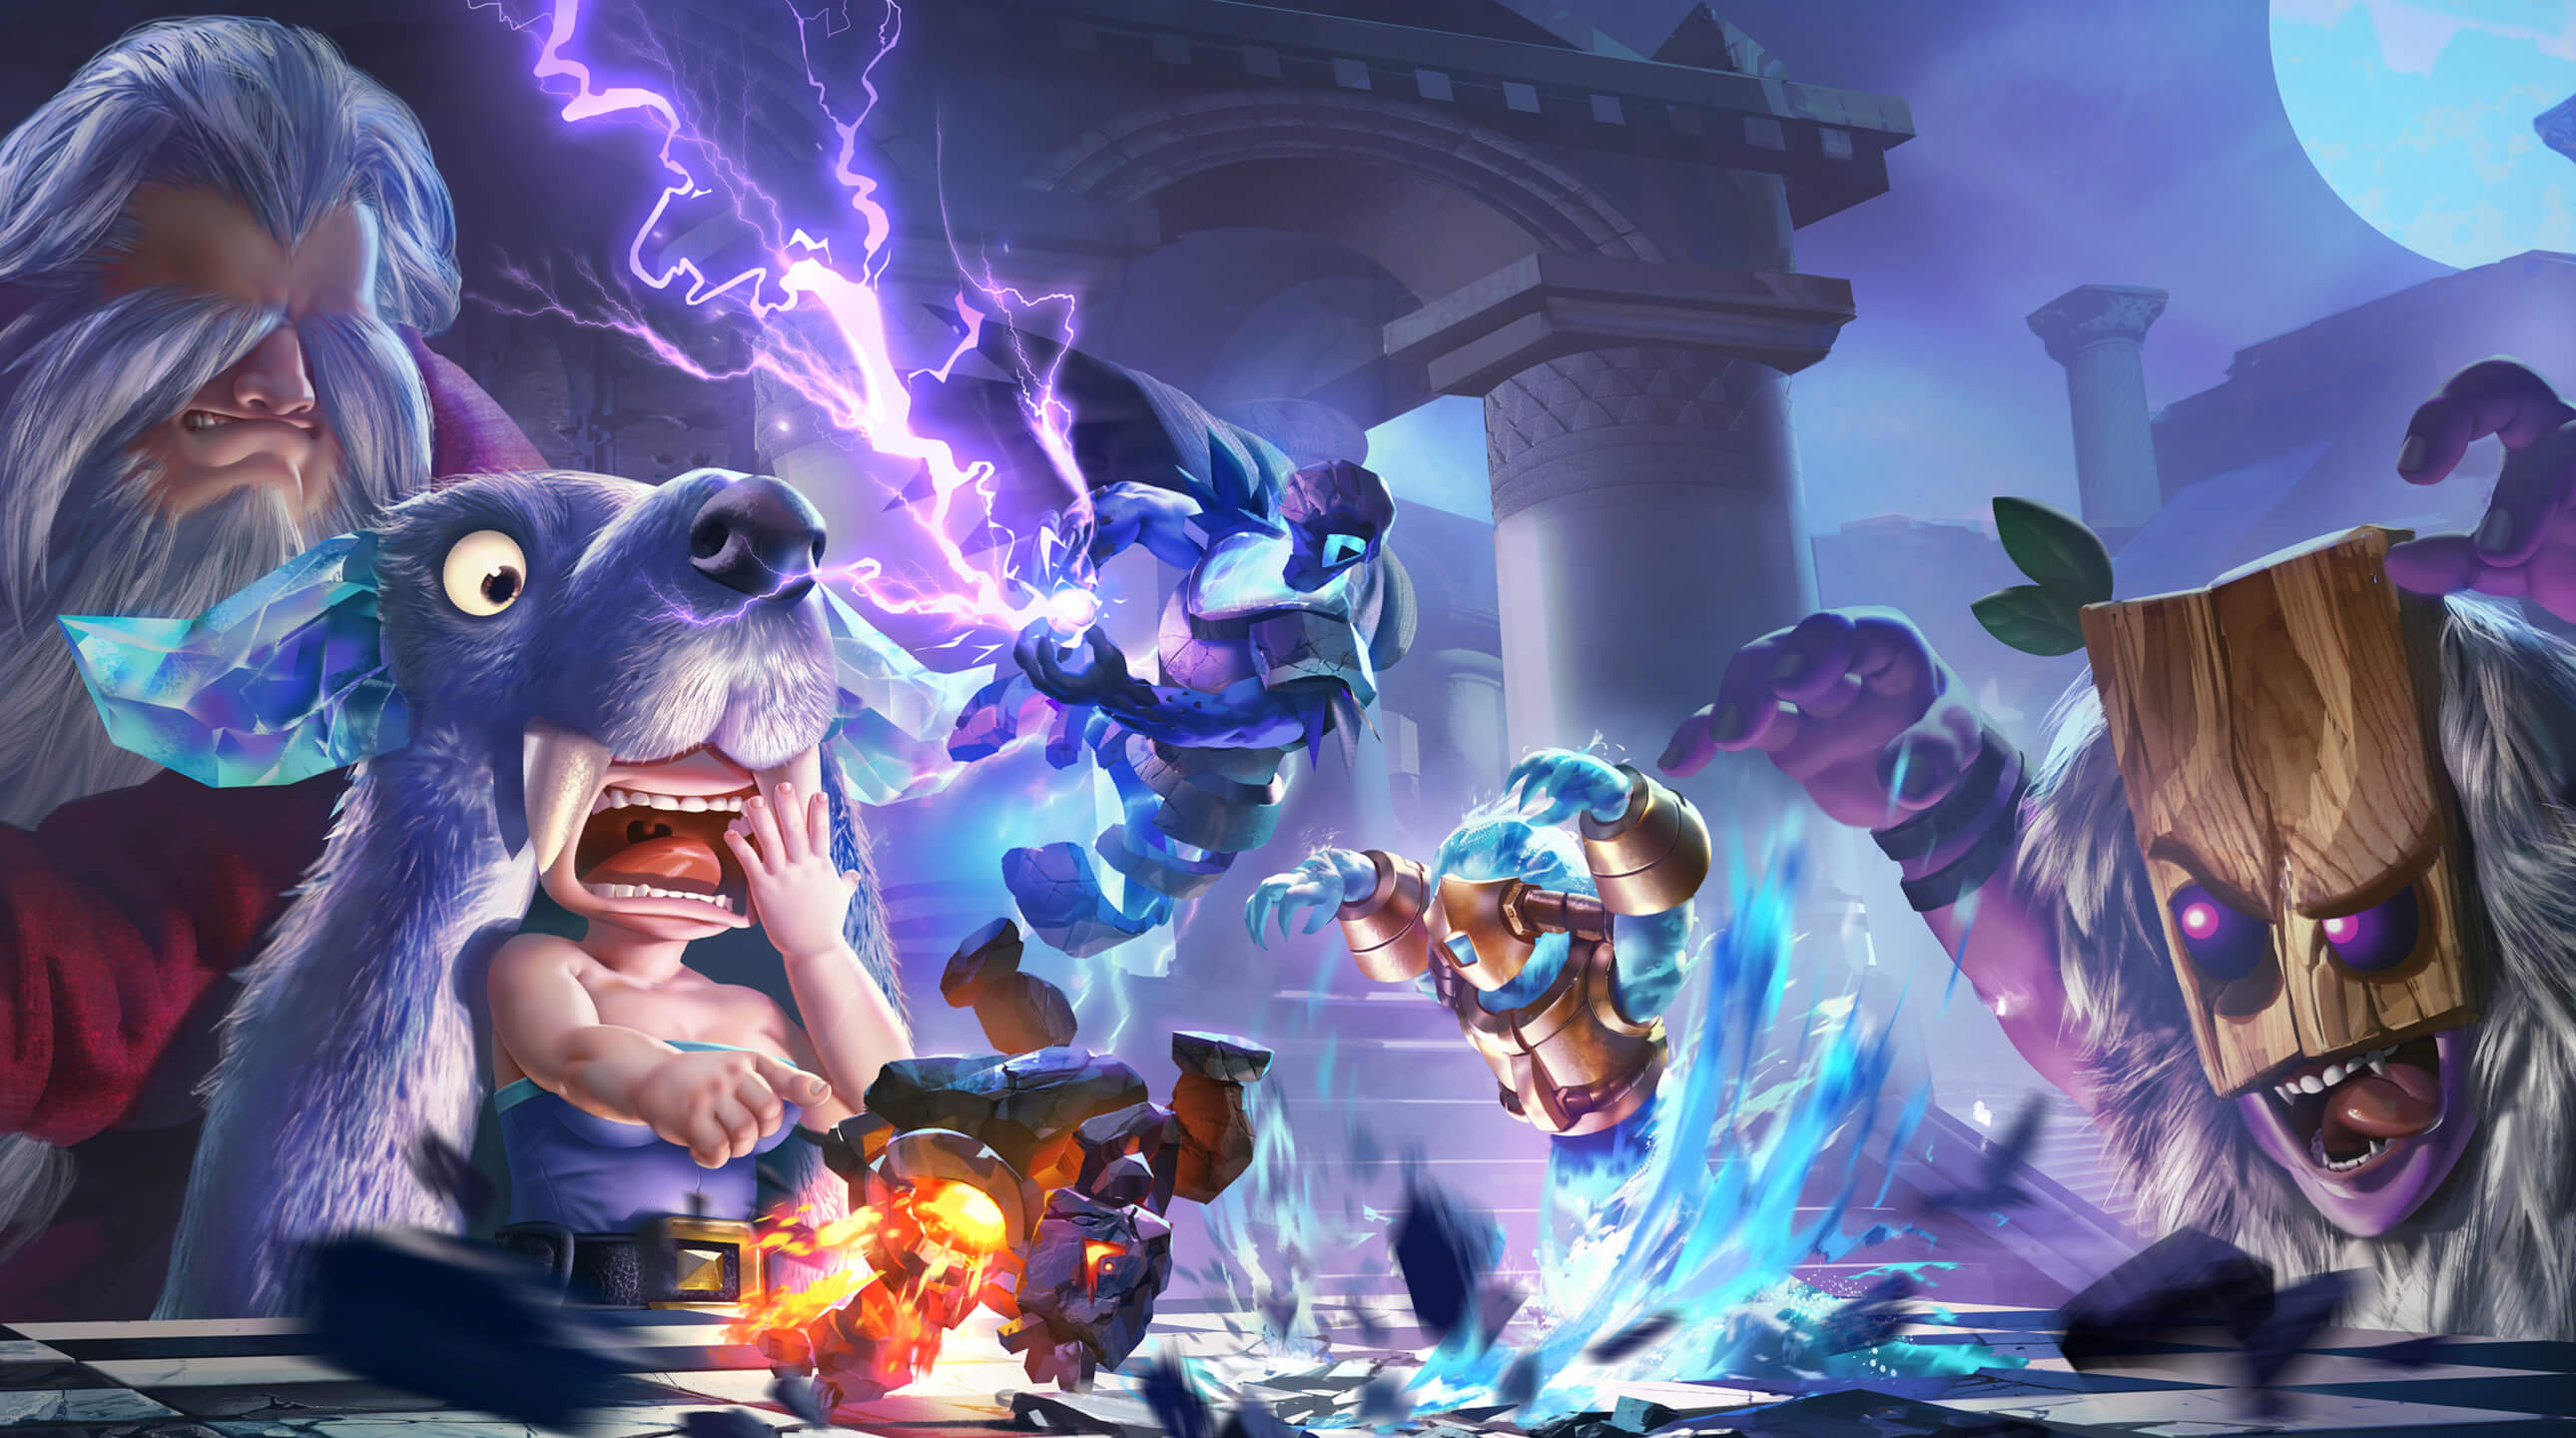 Ps4 Games 2020.Auto Chess Makes A Move To Ps4 In 2020 Push Square